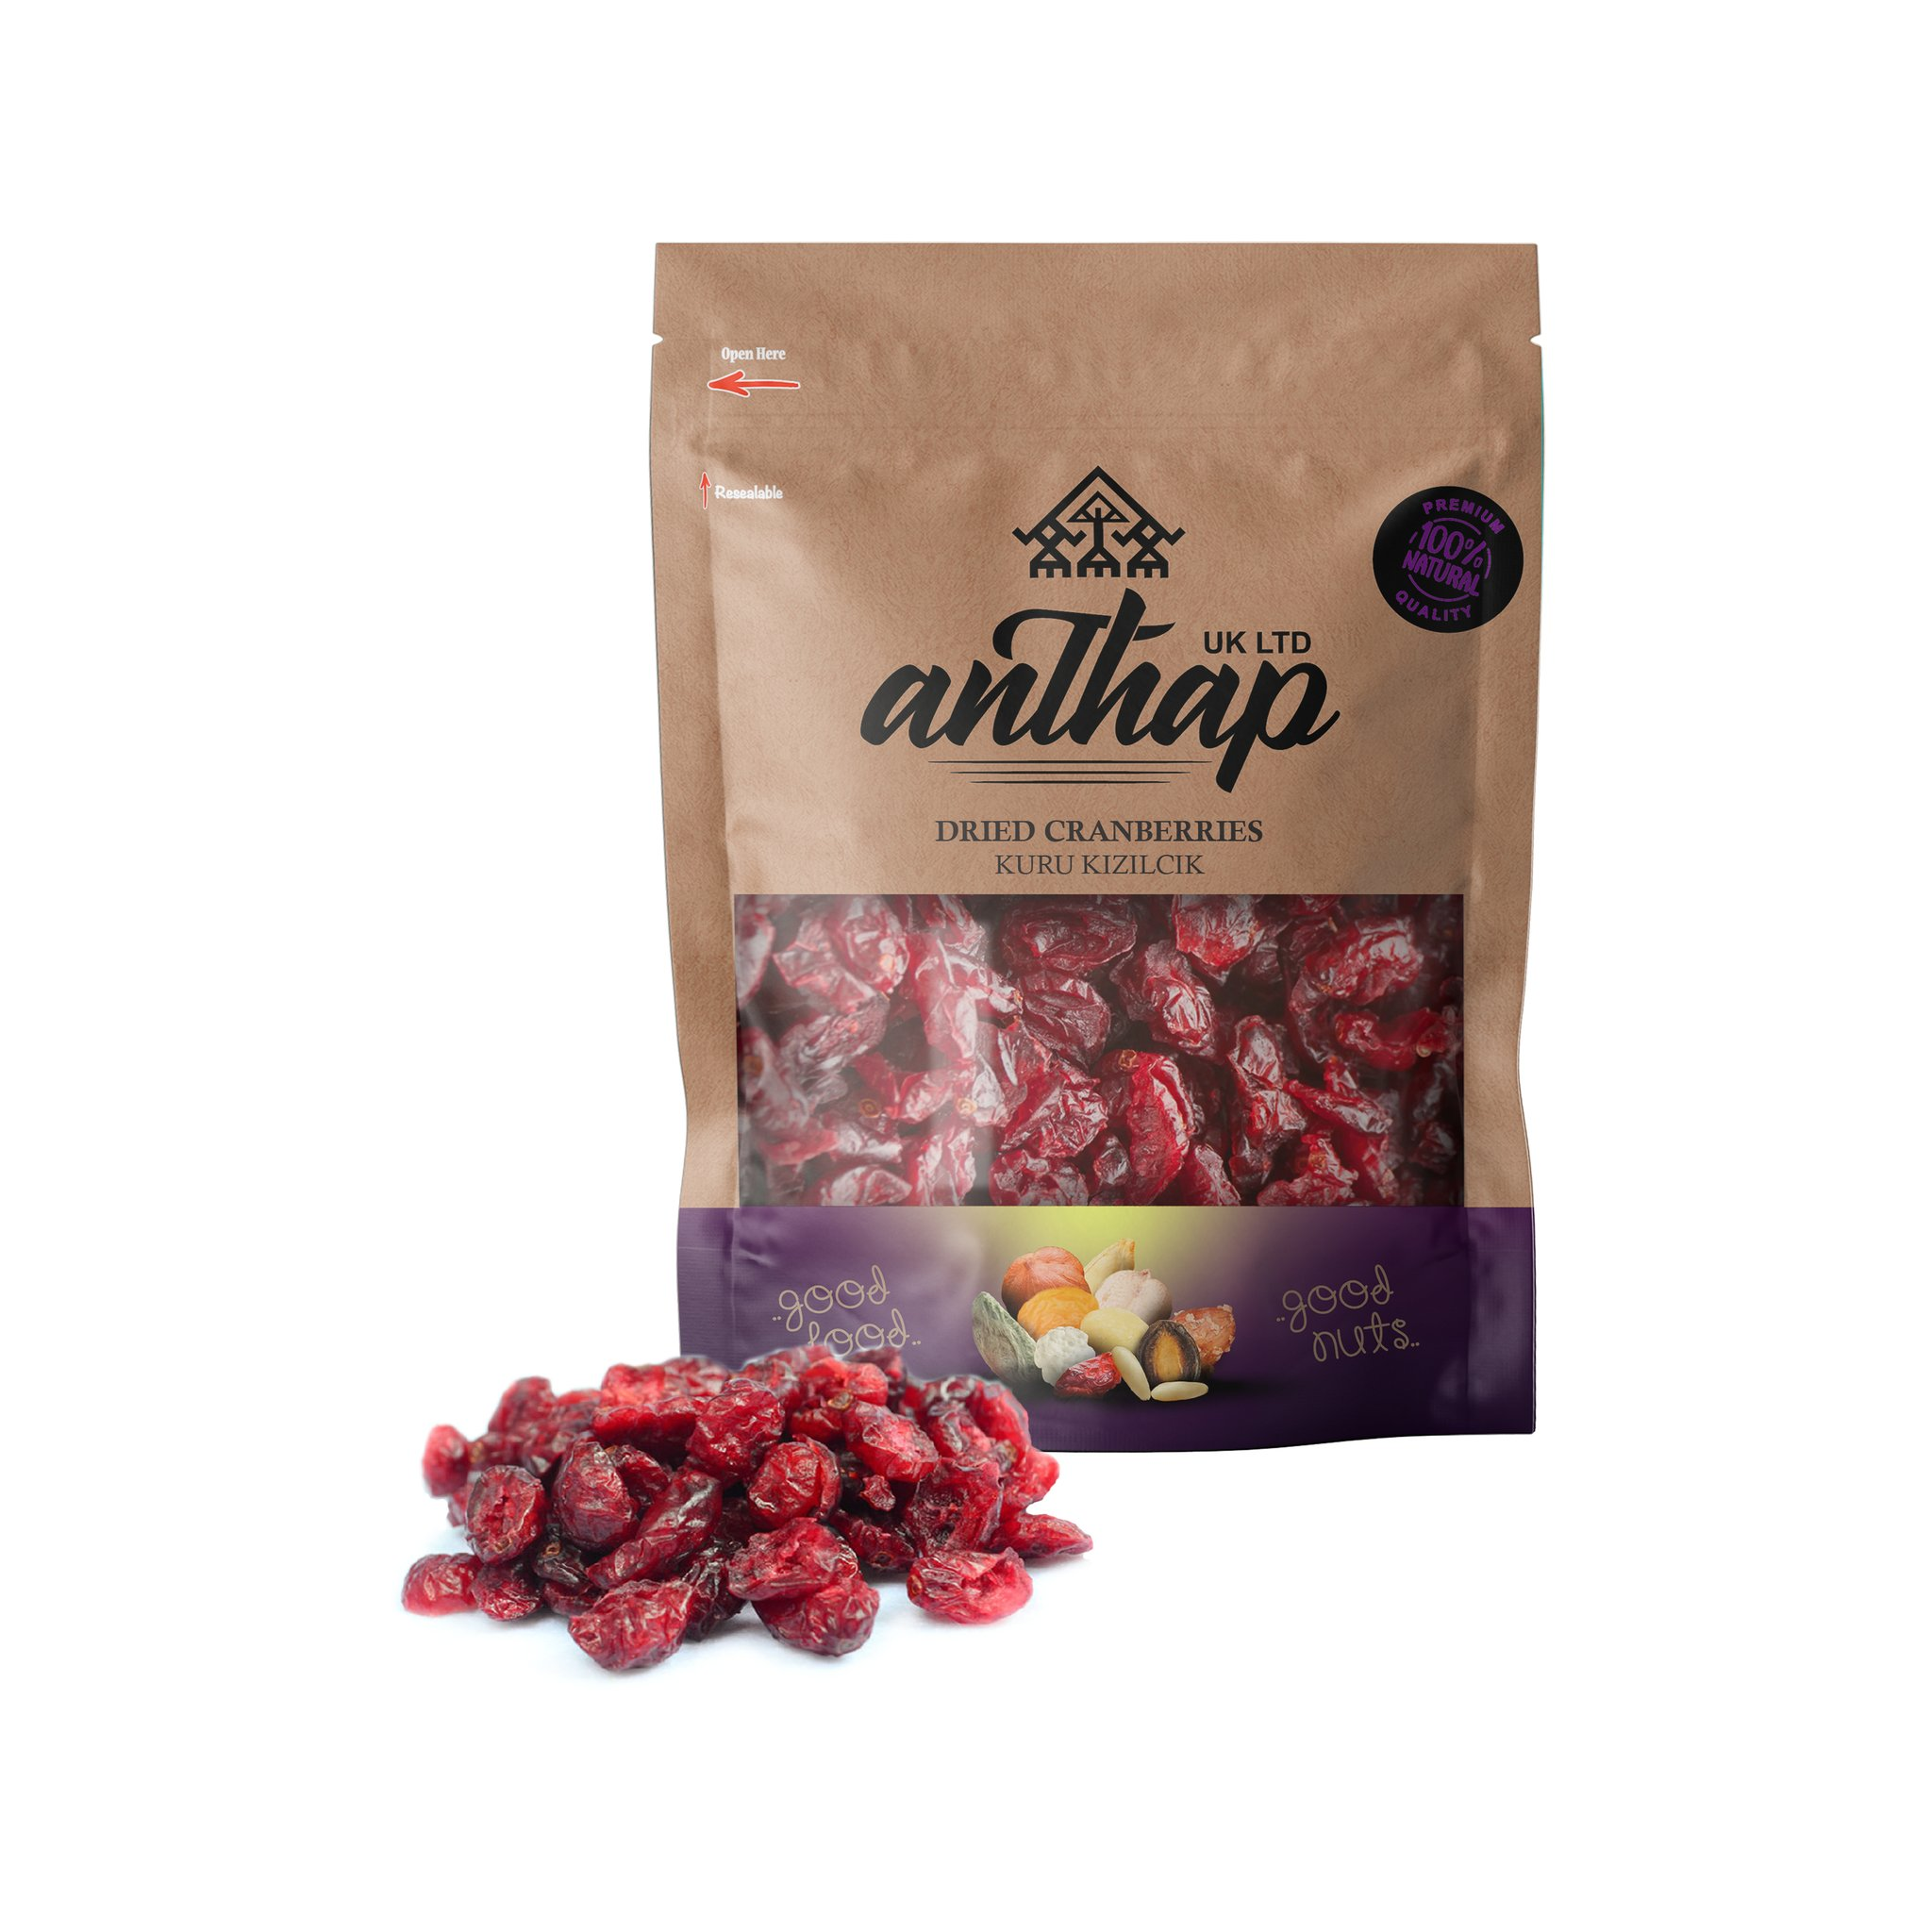 Anthap Dried Cranberries 300g